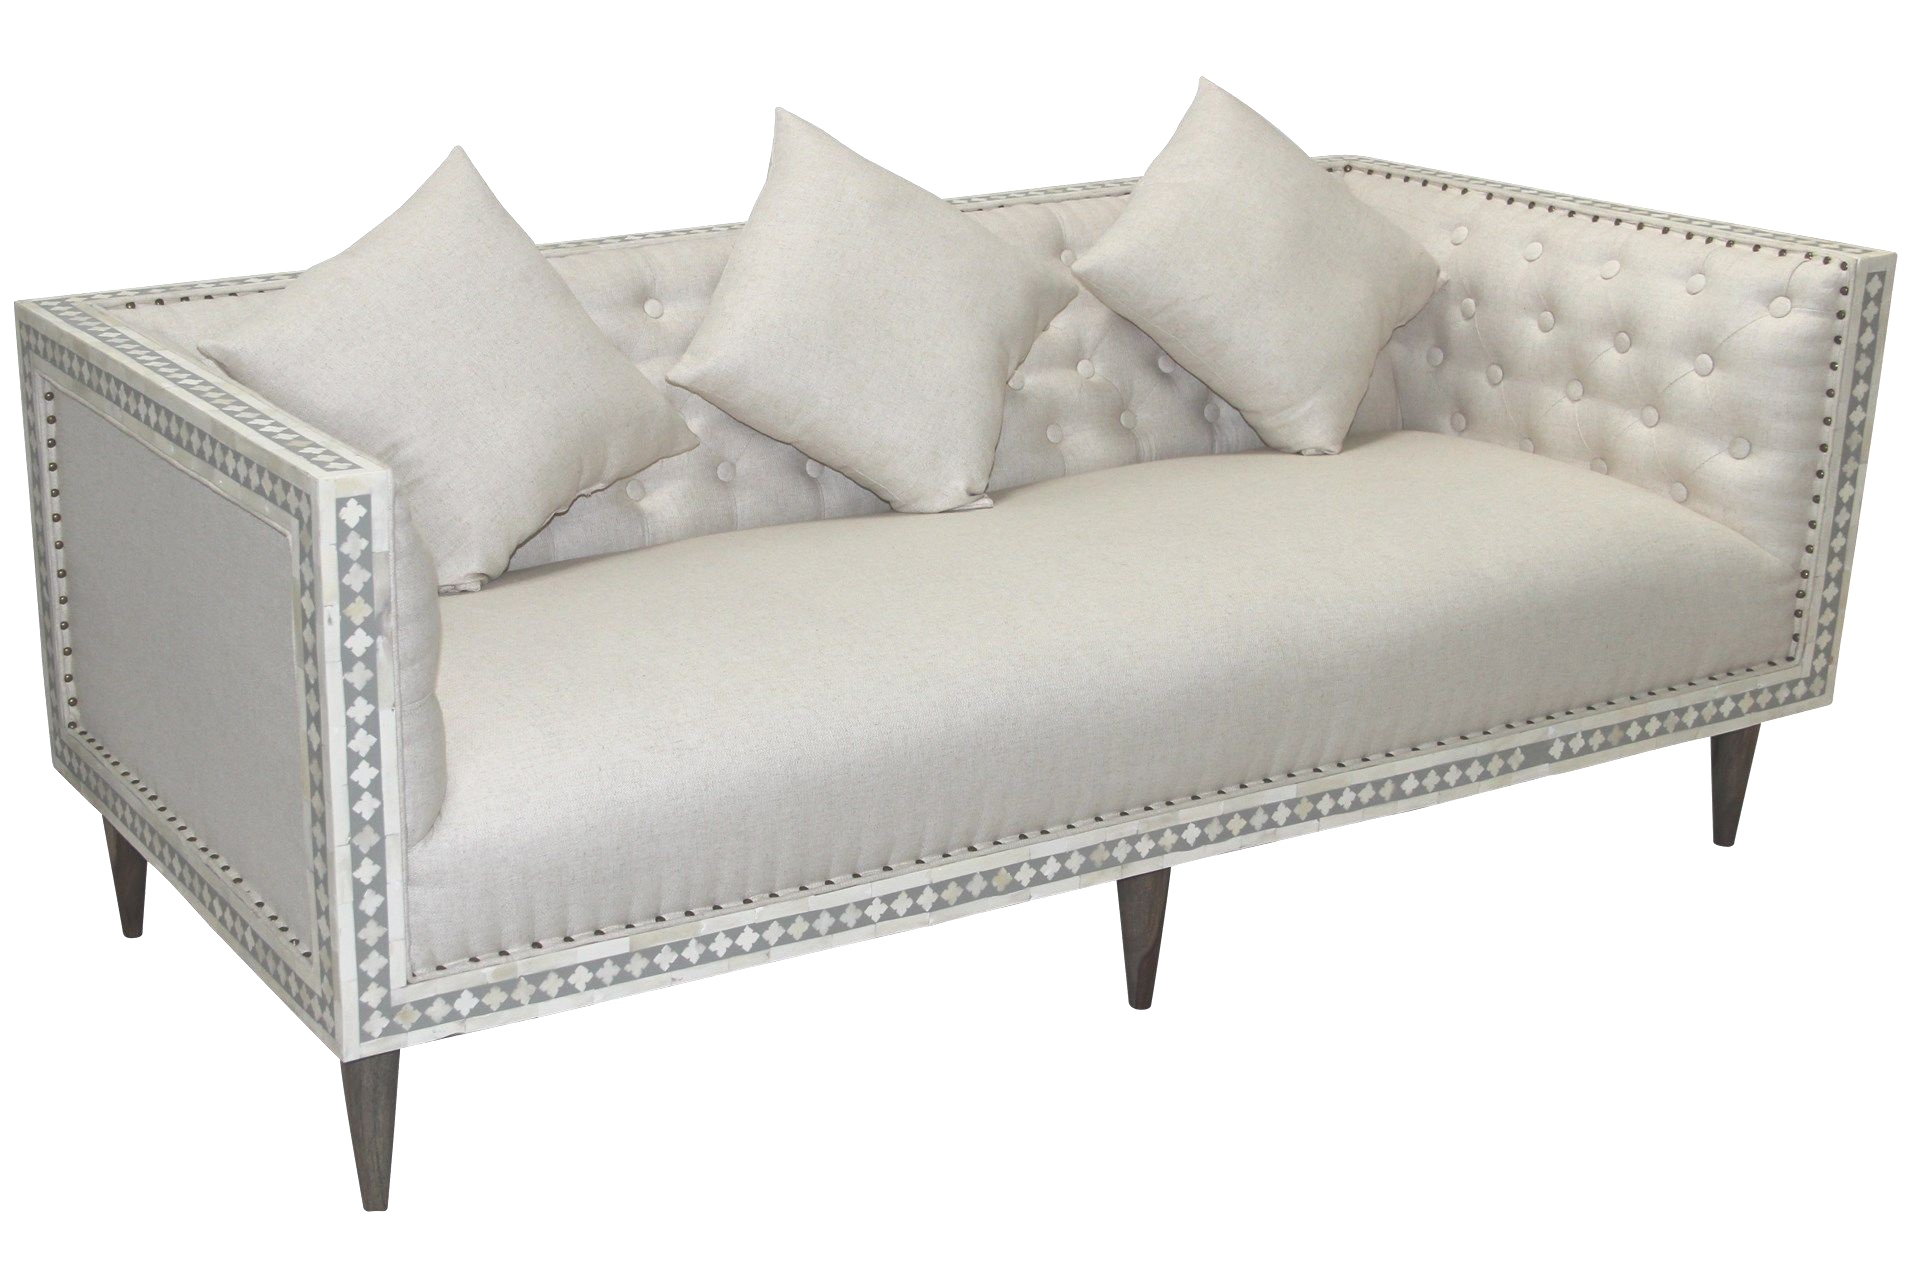 Bone Inlay Boho Sofa $325